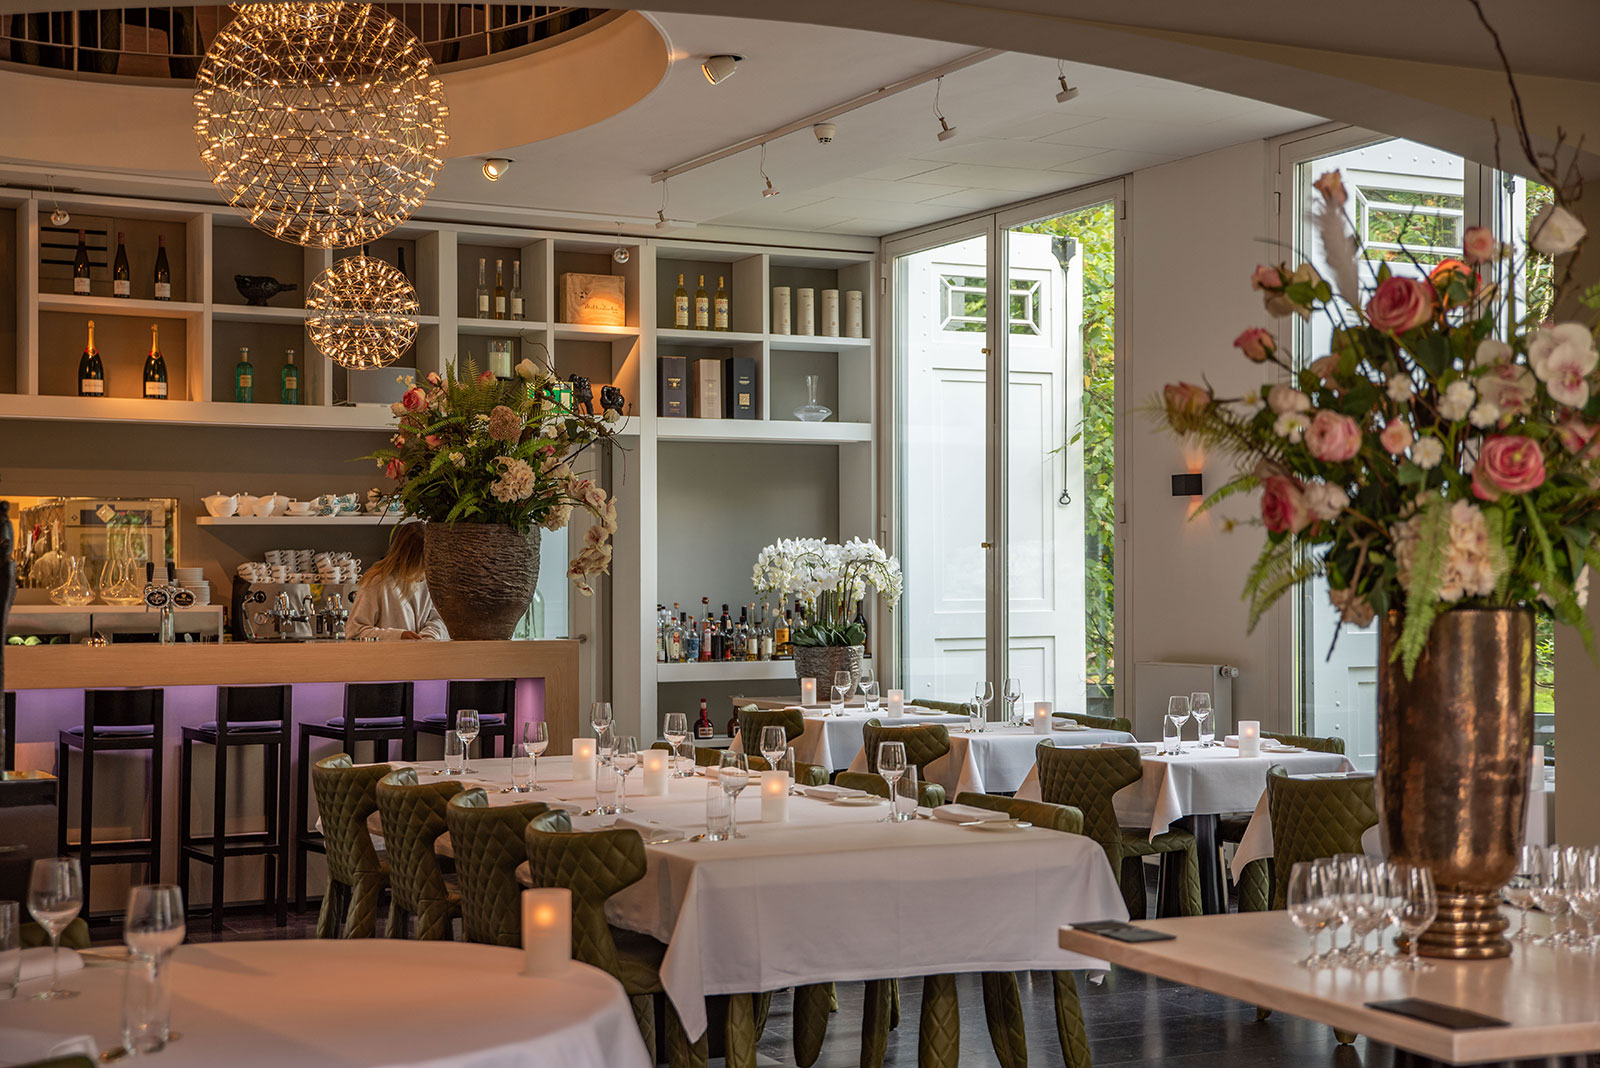 Michelinster restaurant Brabant